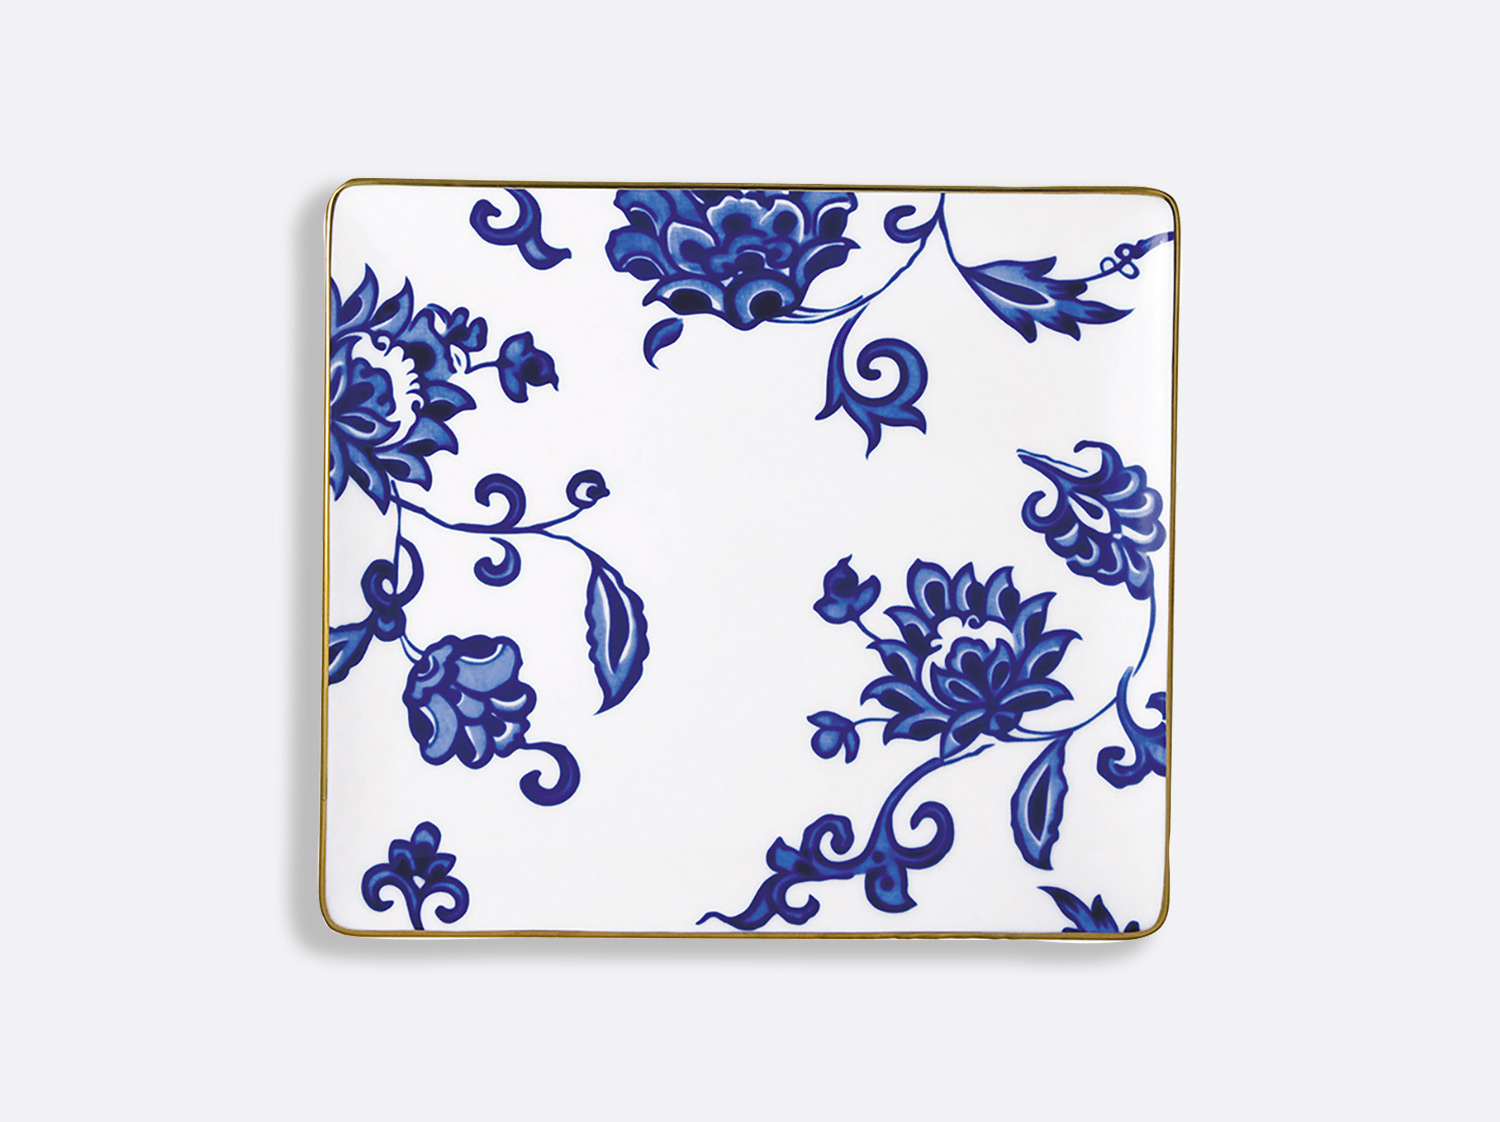 Plateau rectangulaire 22 x 19,5 cm en porcelaine de la collection Prince bleu Bernardaud